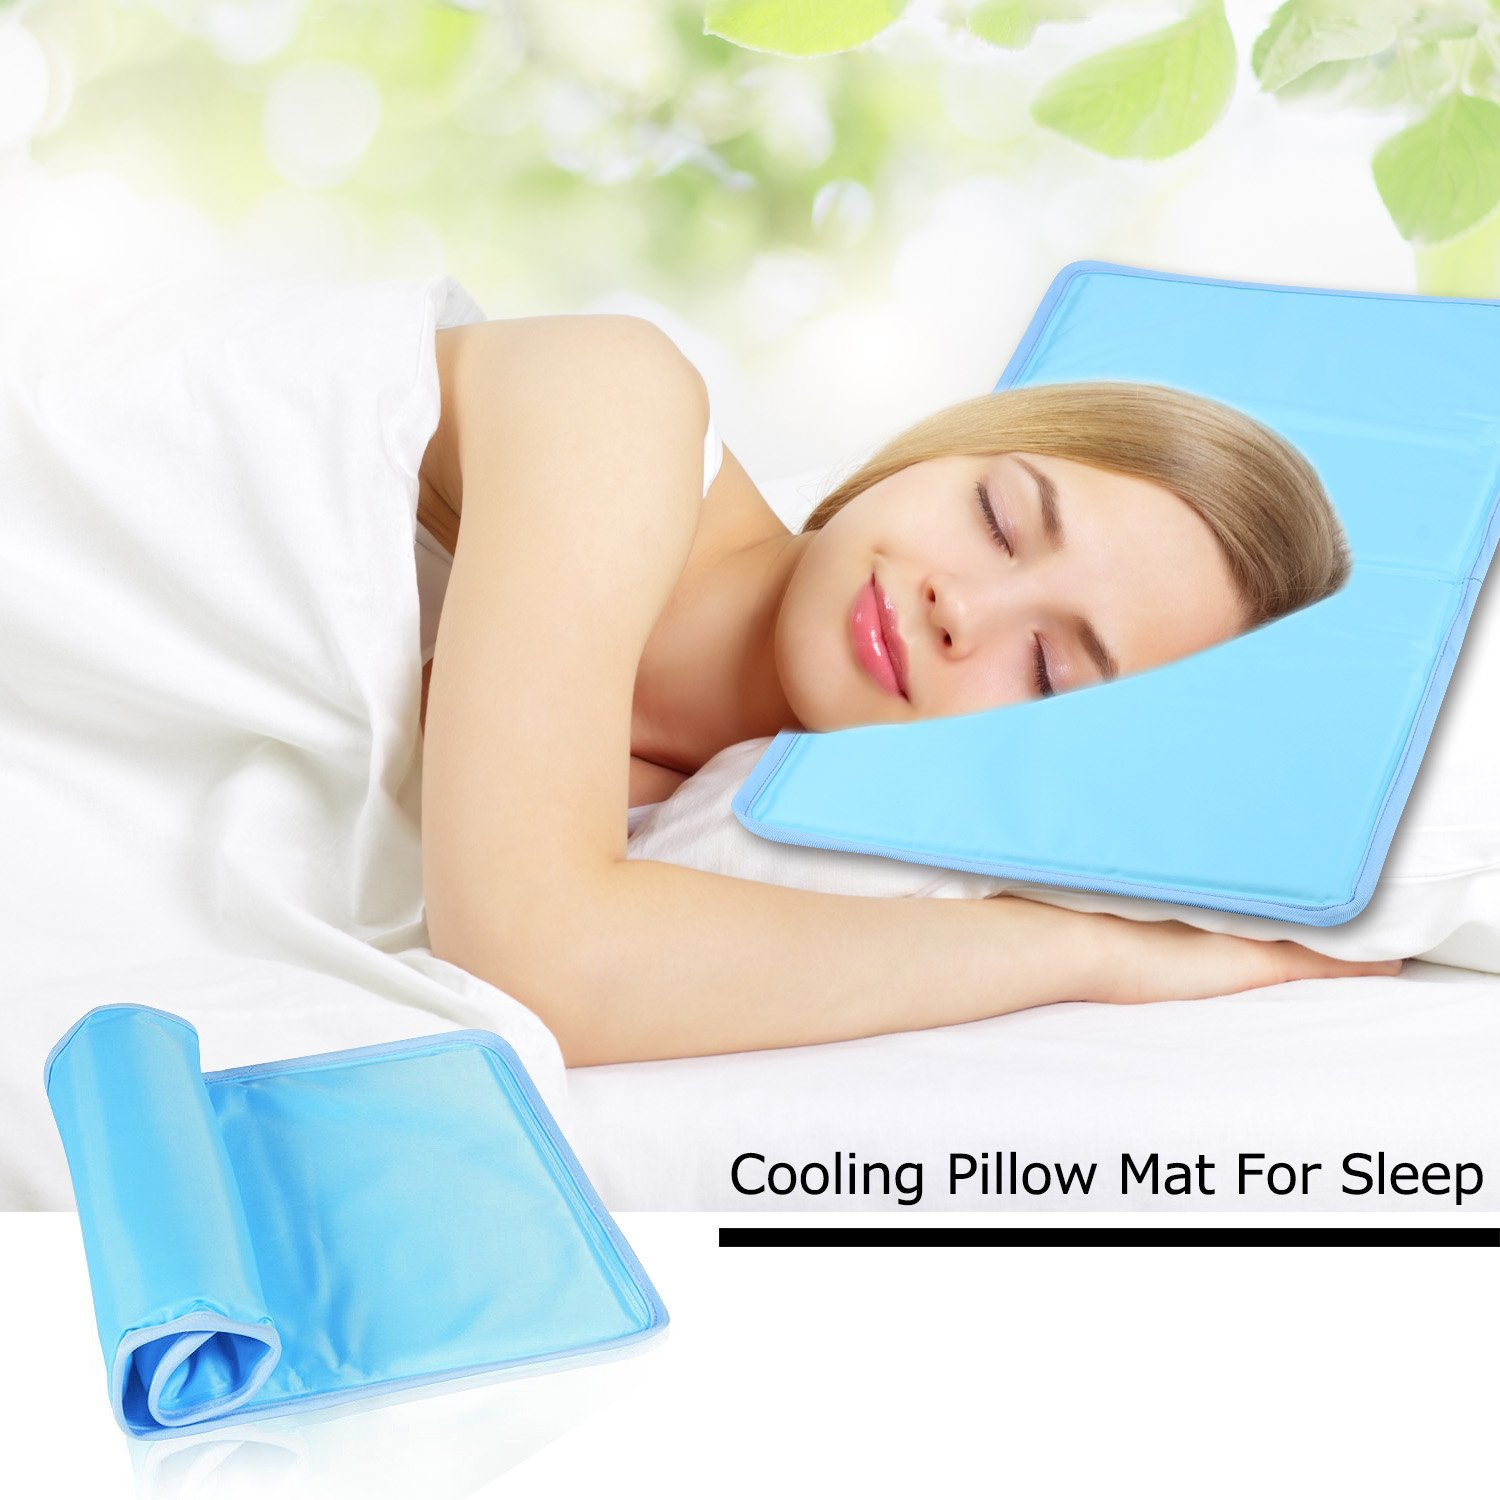 Kingstar Cool Pillow Gel Mat, 11 x 22'' Odorless Cooling Chilly Pad Soft Gel Cool Pillow Mats No Water Leaking for Reduces Migraines Hot Flashes and Fevers